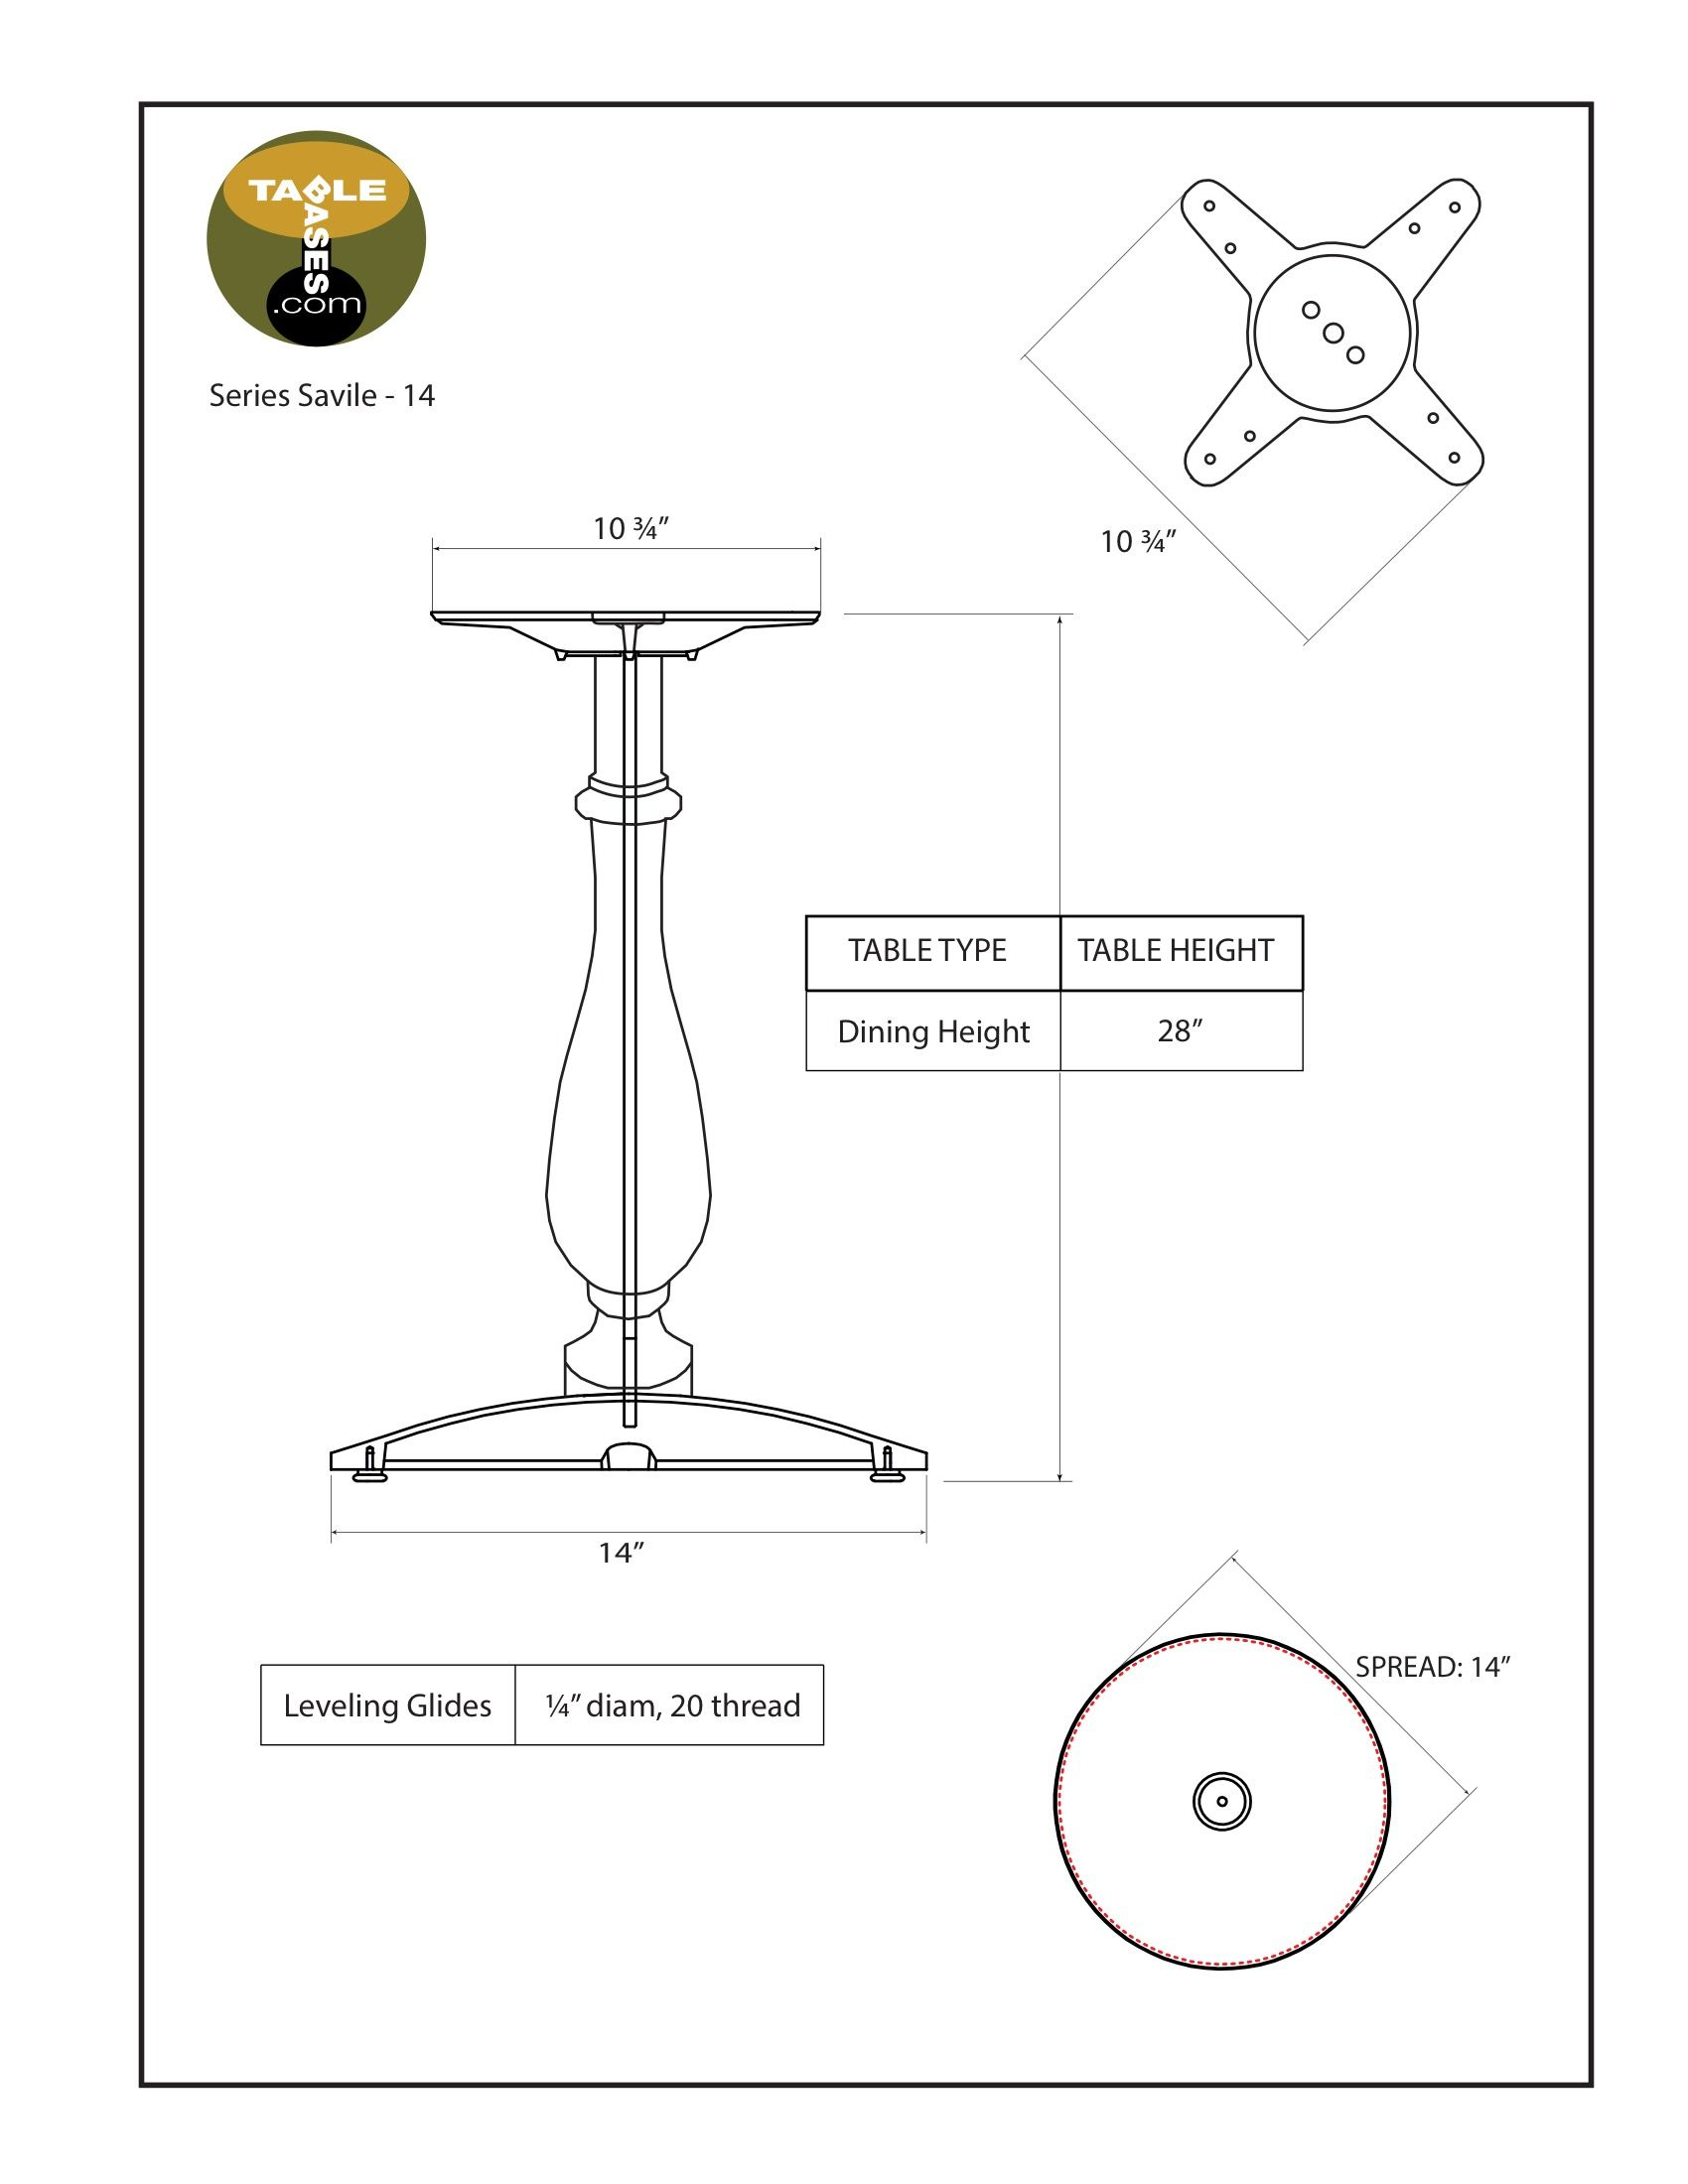 Savile-14 Specifications